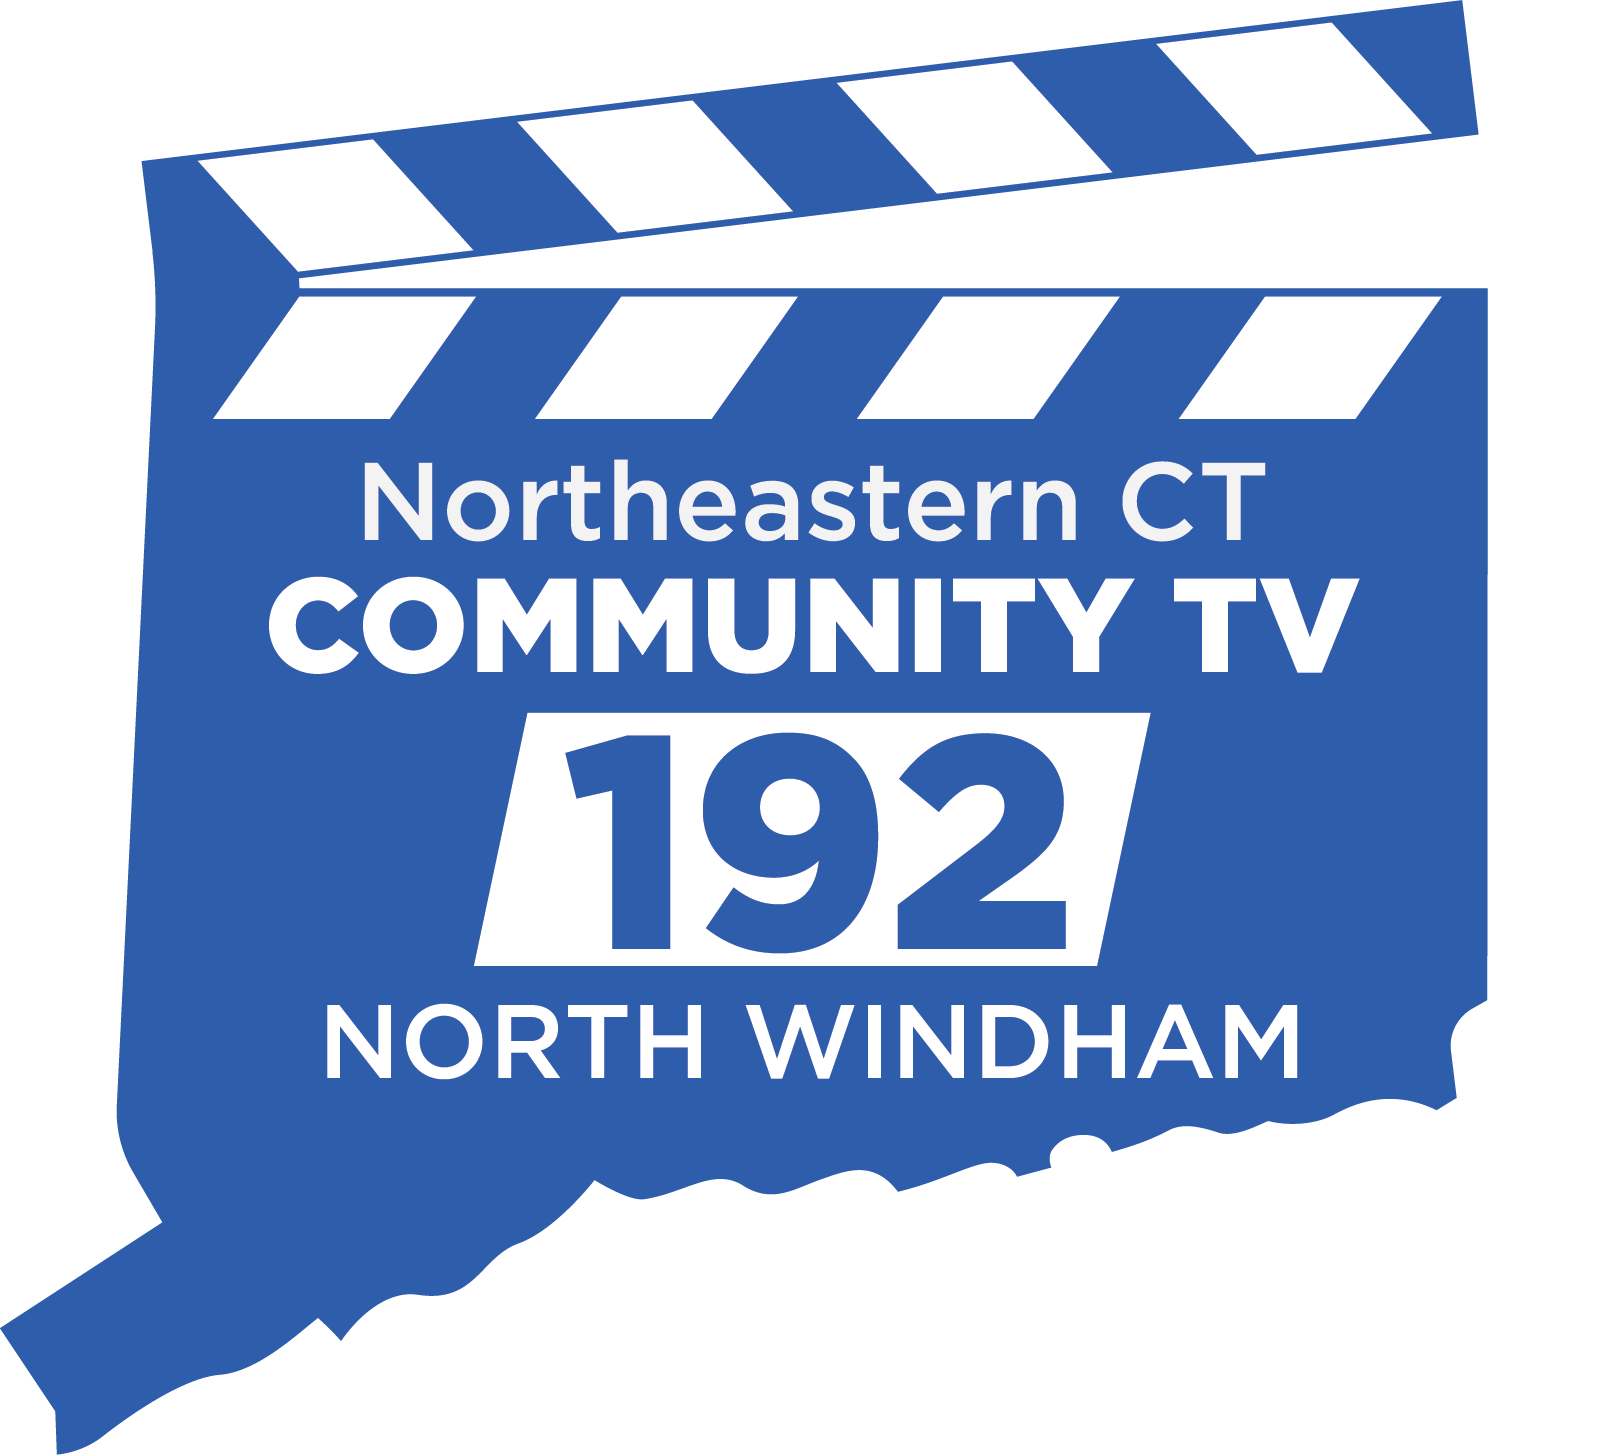 Northeastern CT Logo